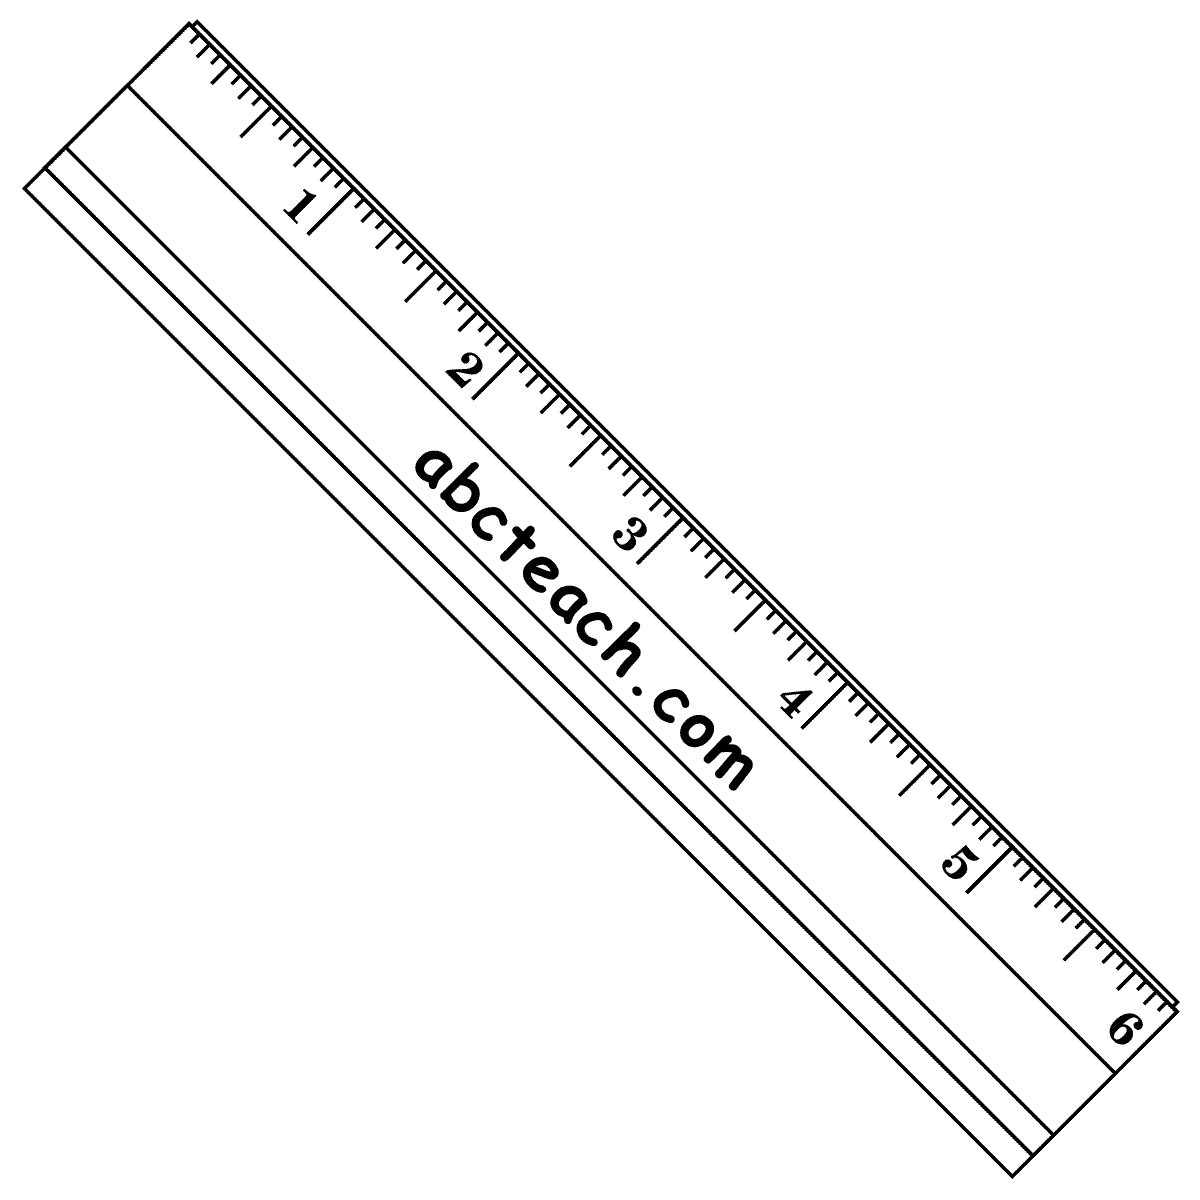 coloring pages ruler - photo#2